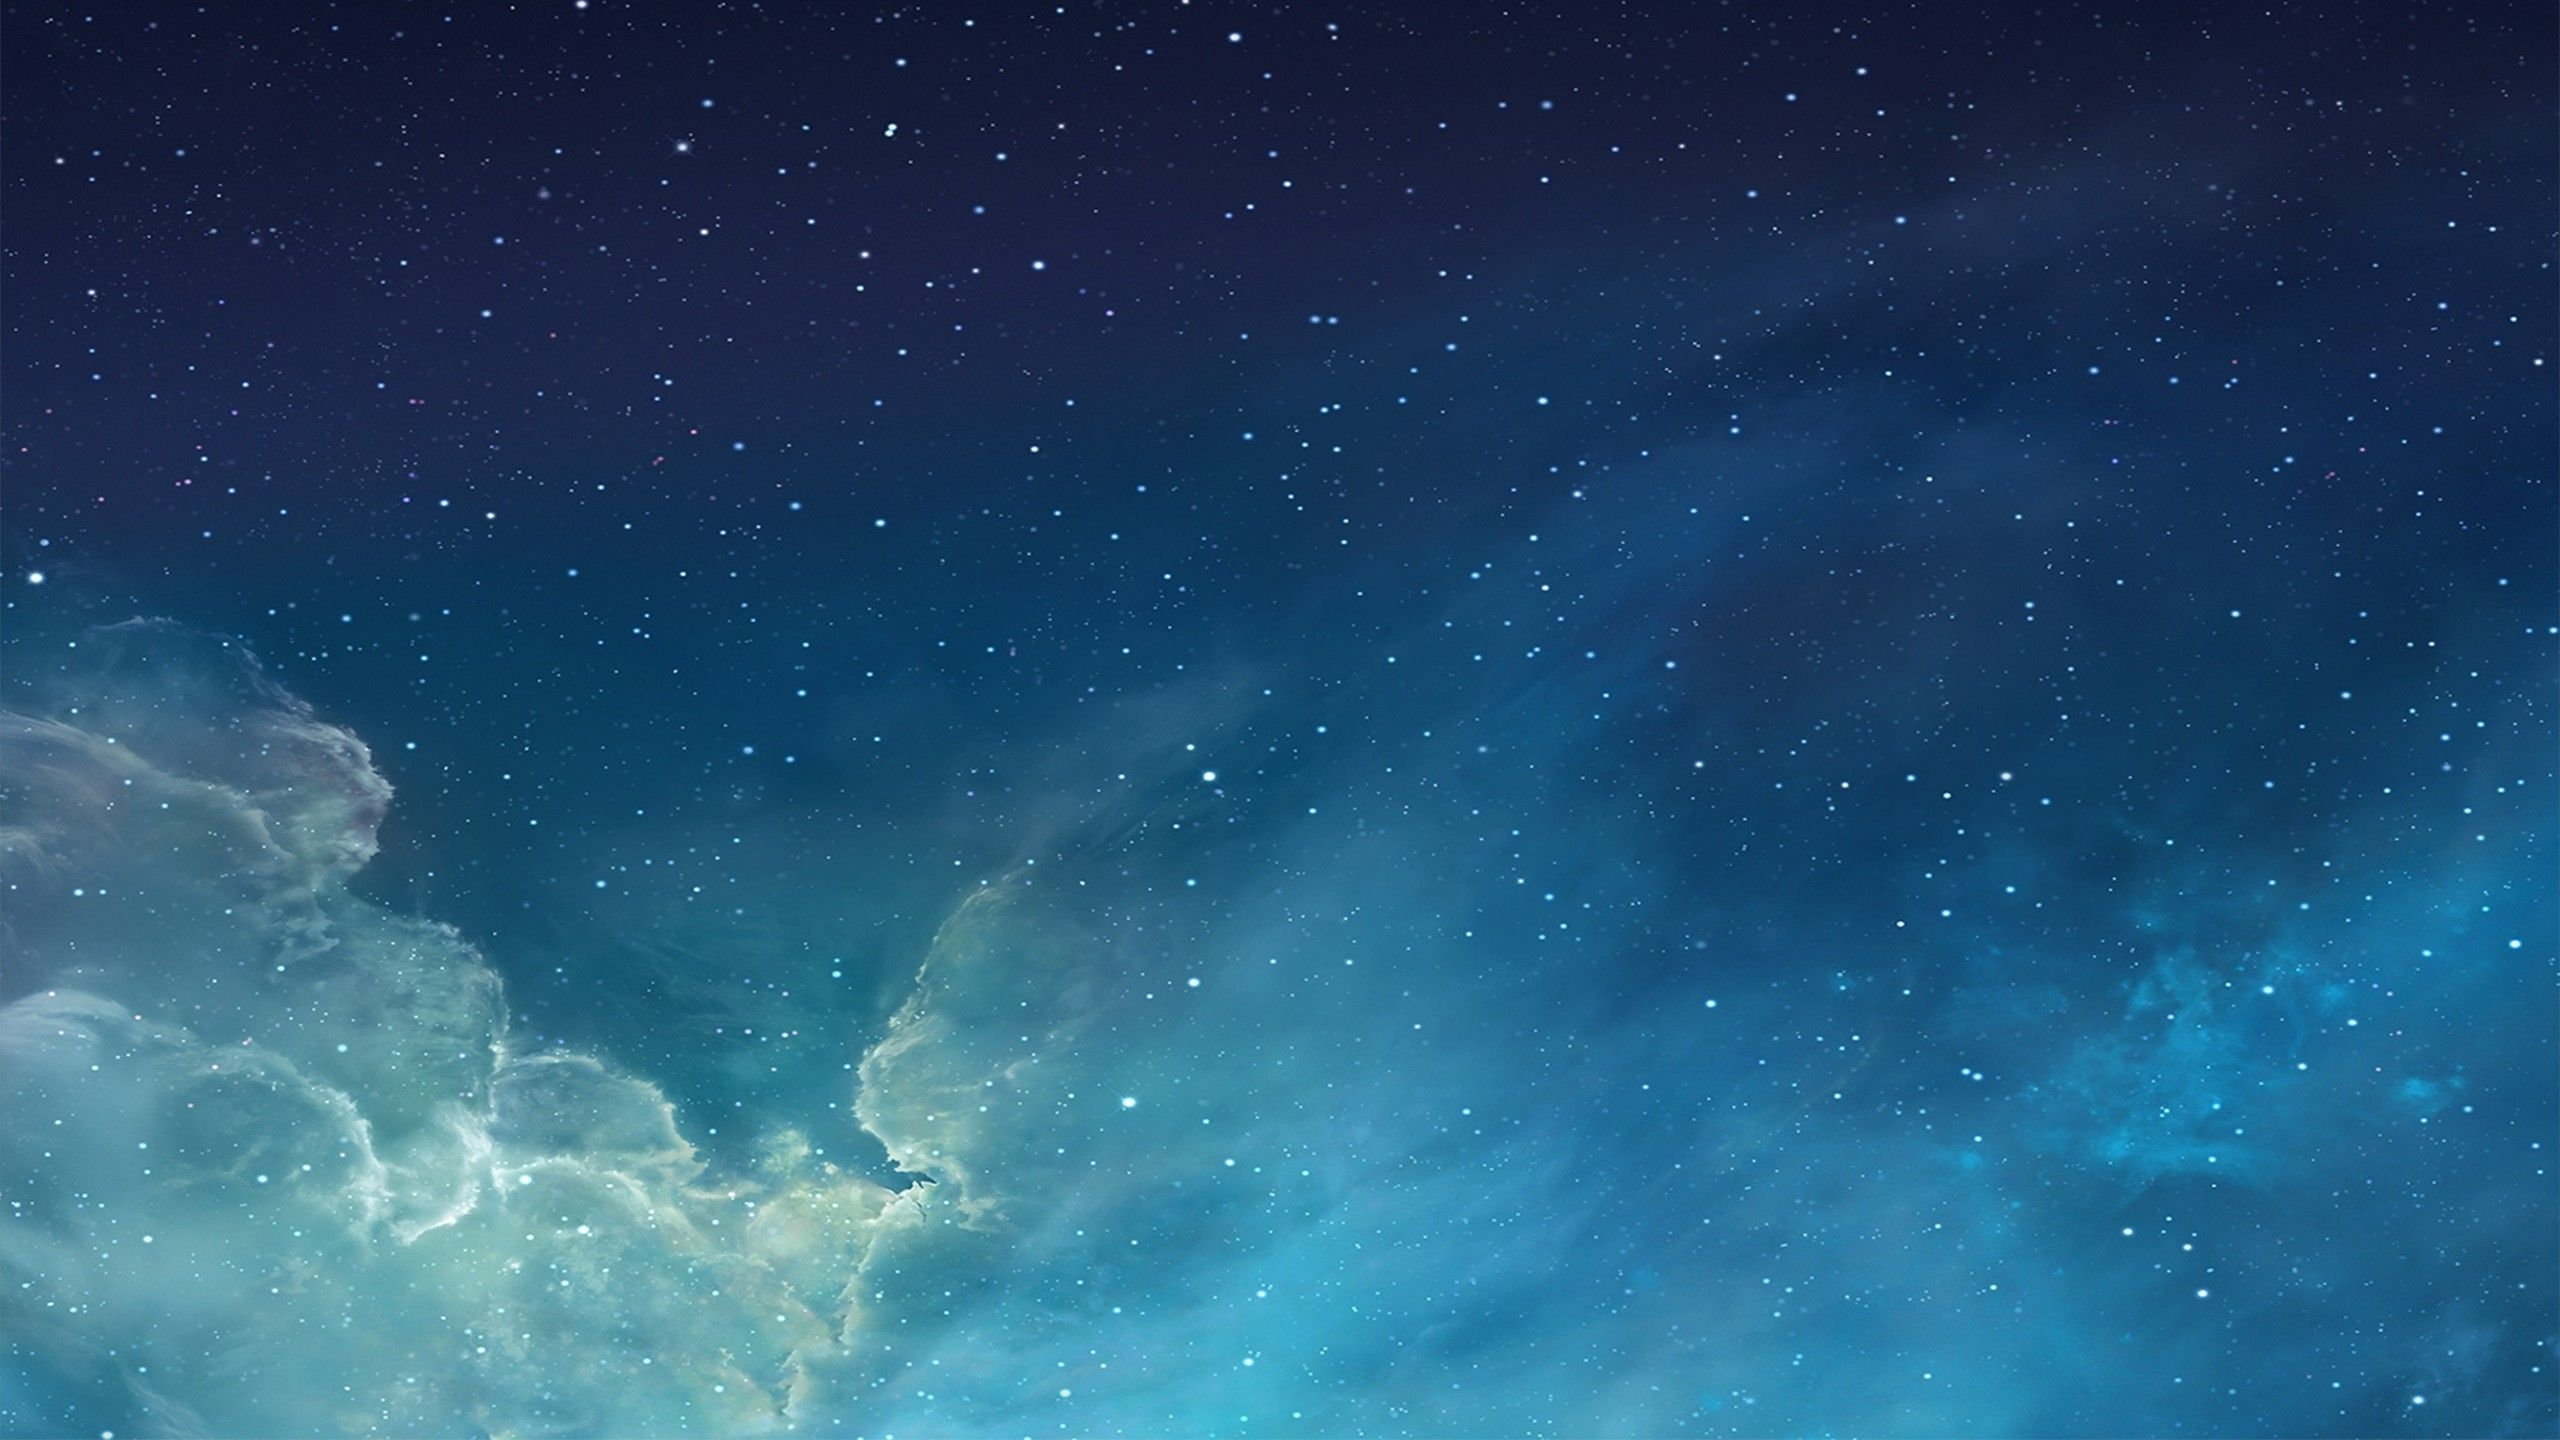 Wallpaper Of Stars In Sky